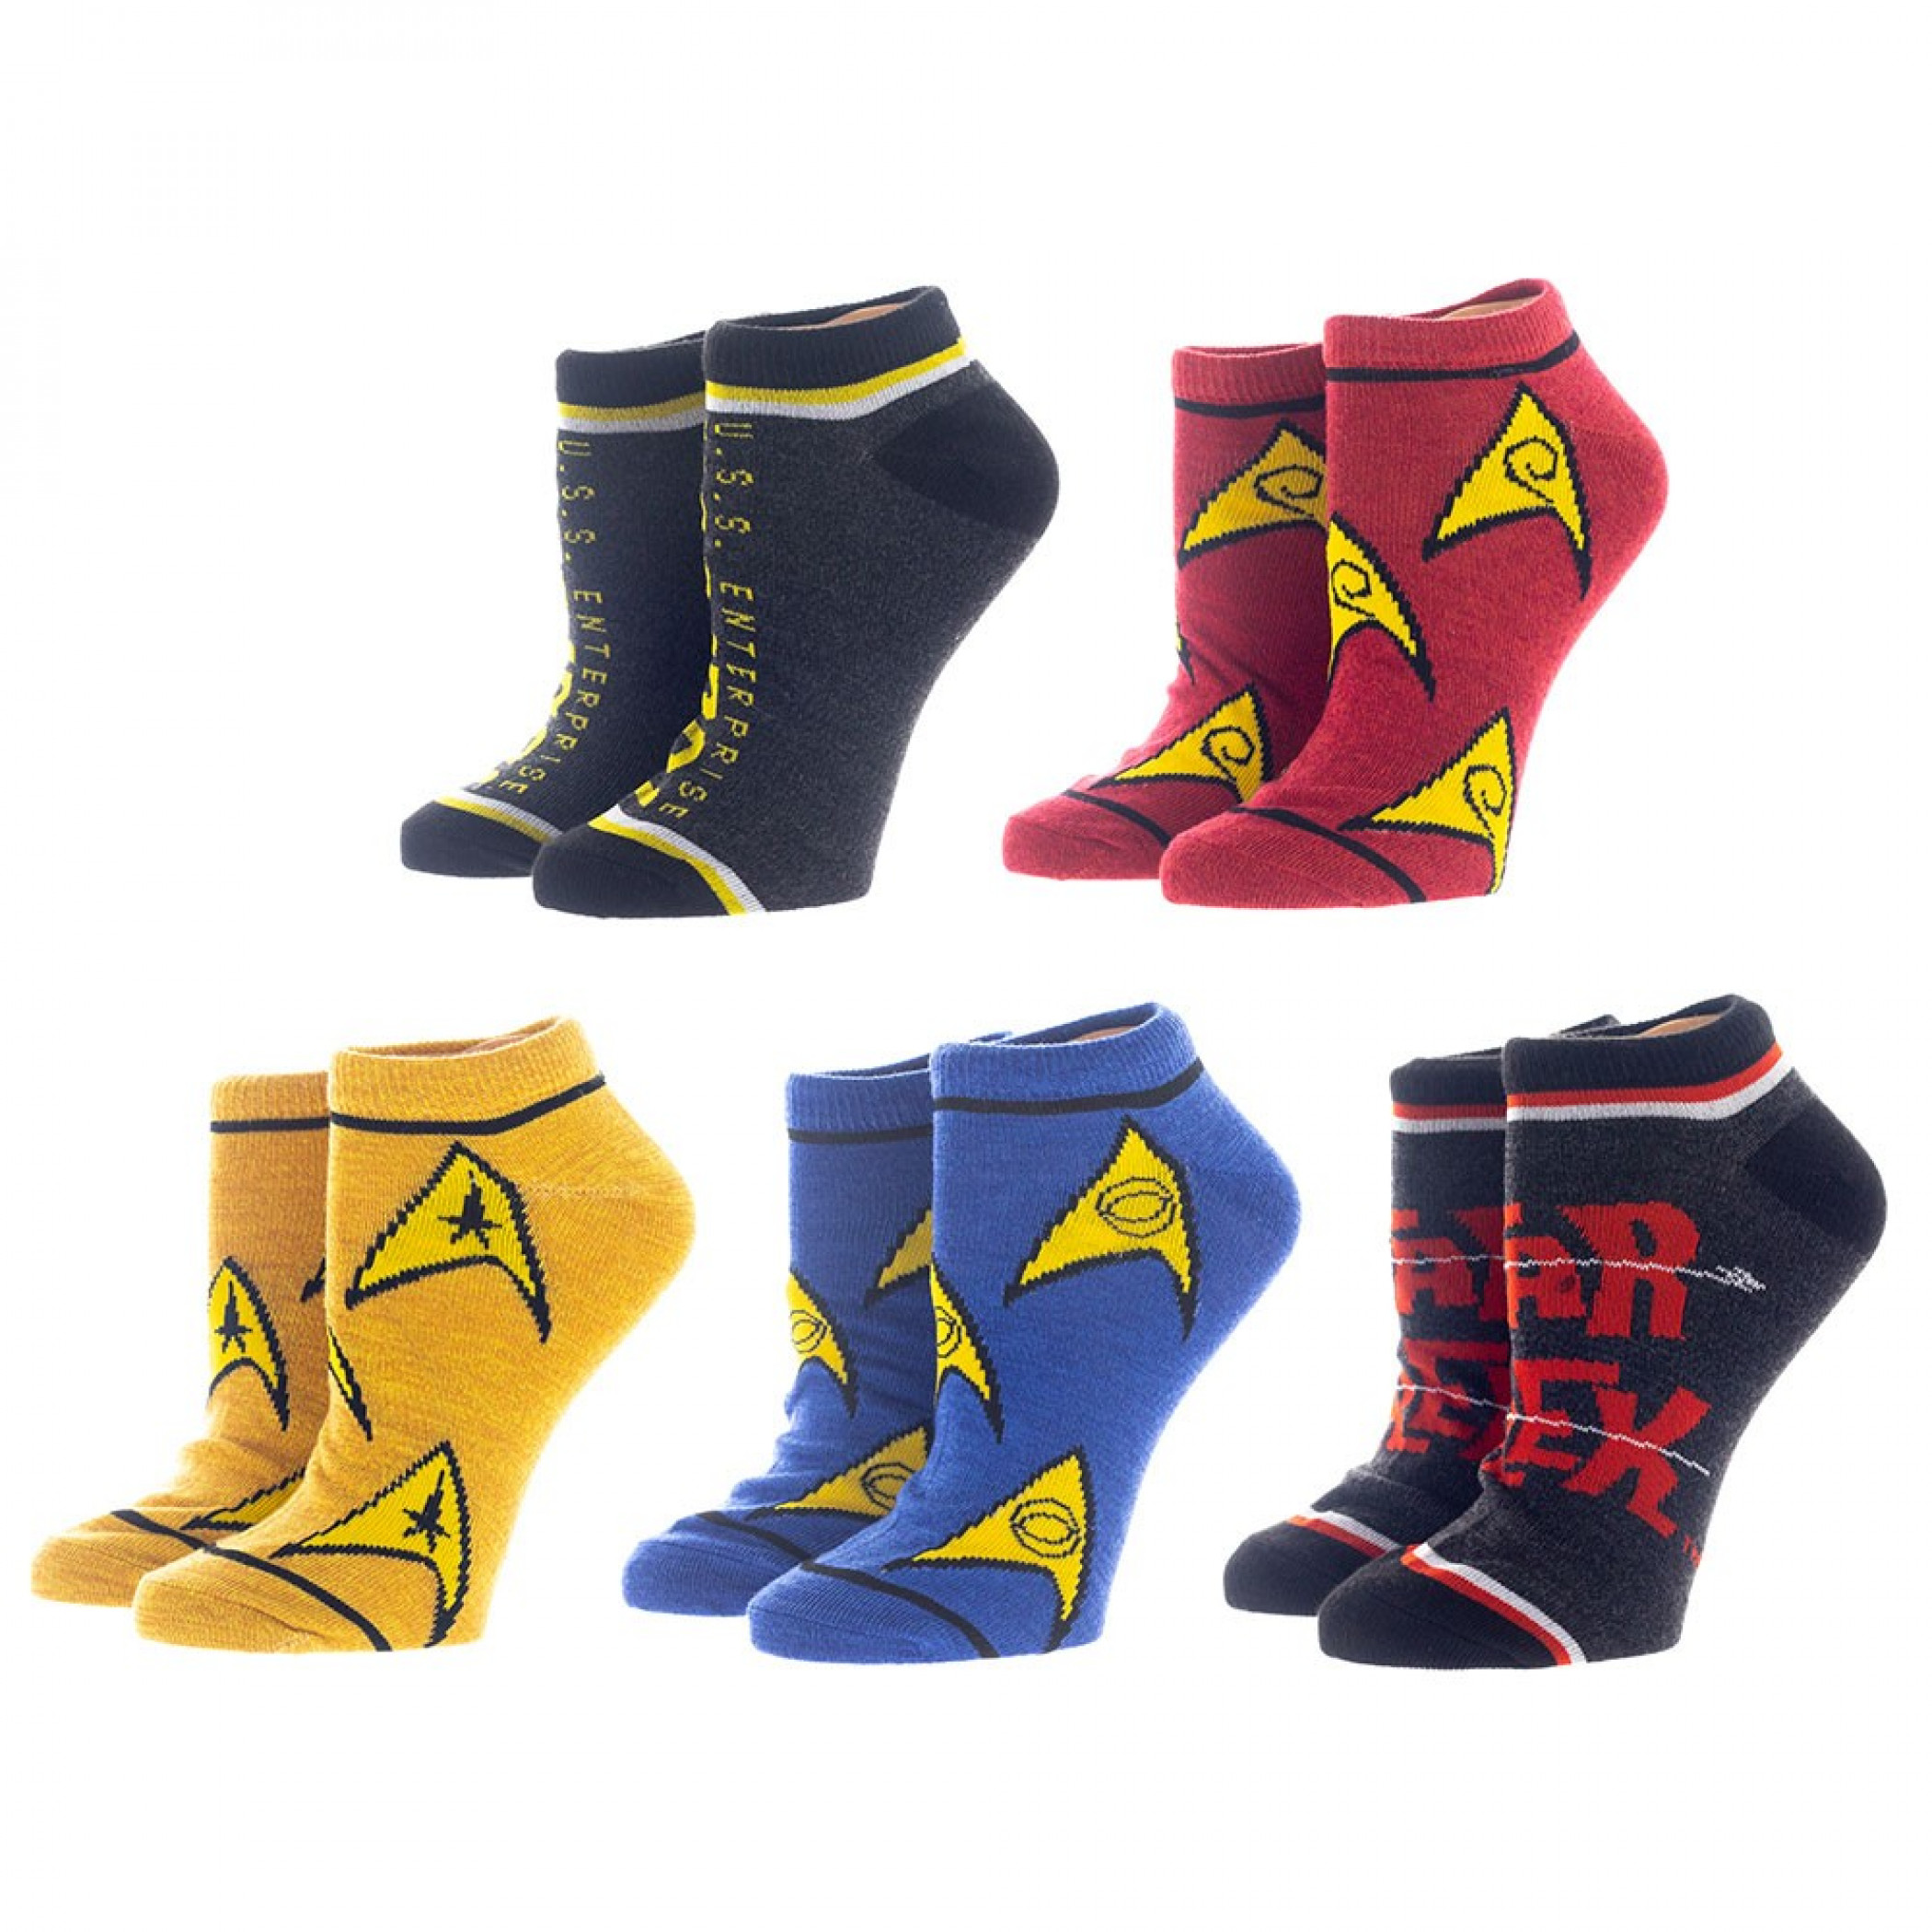 Star Trek 5-Pair Pack of Women's Ankle Socks